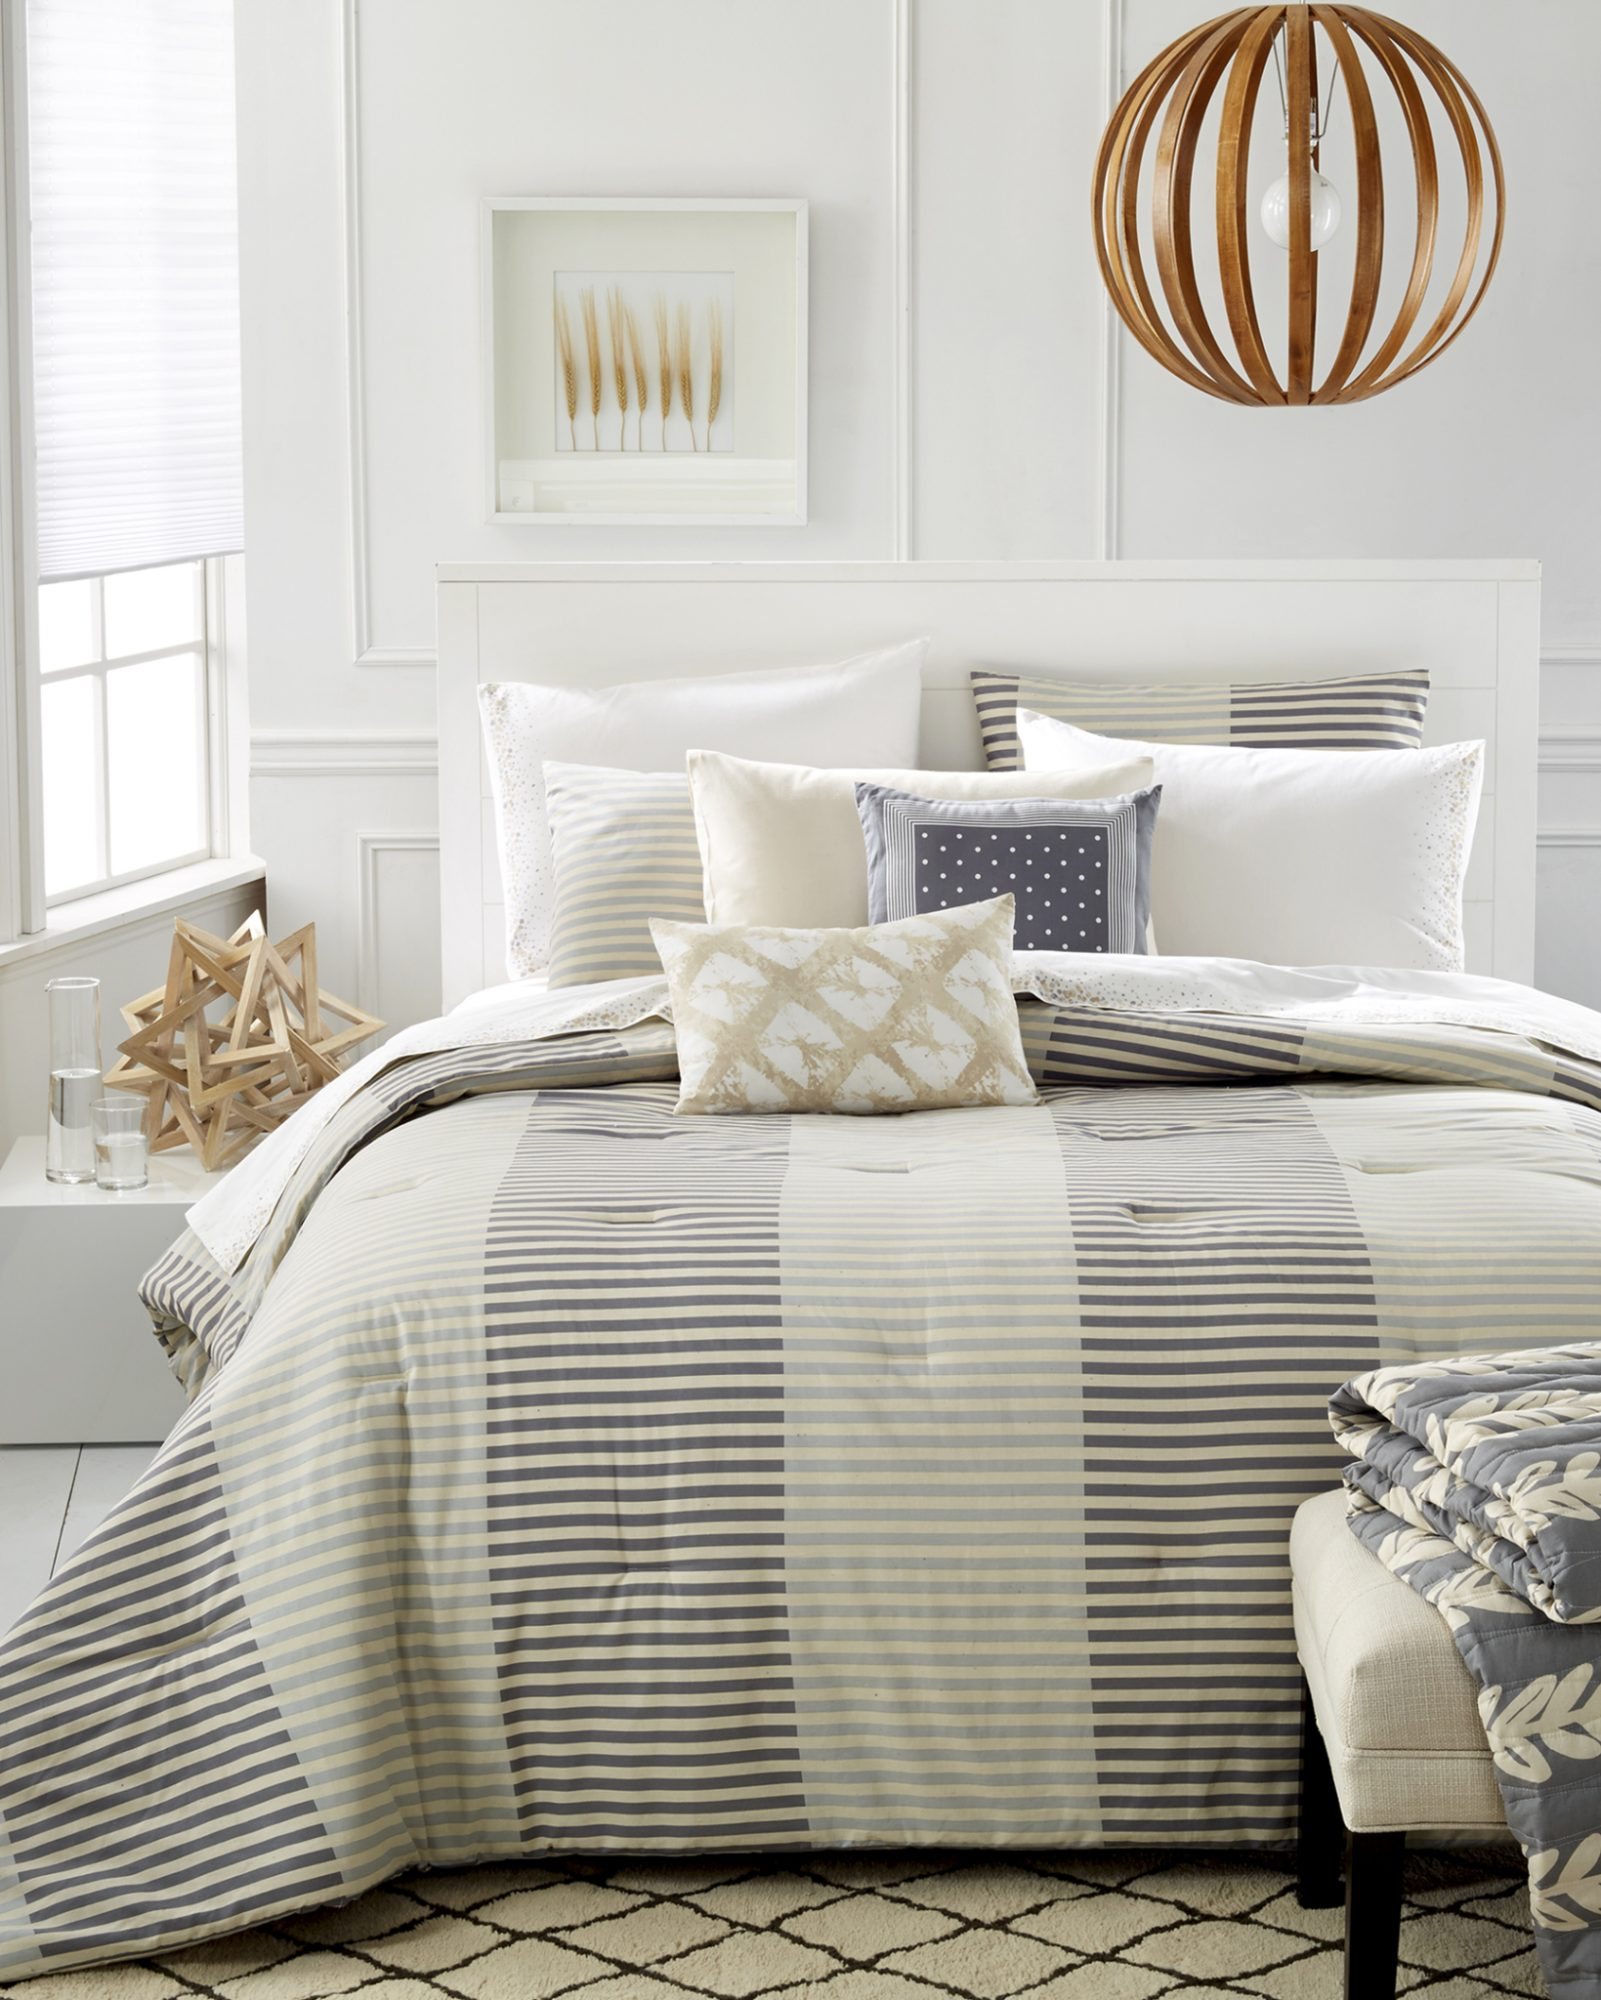 Striped Banddding & accent pieces